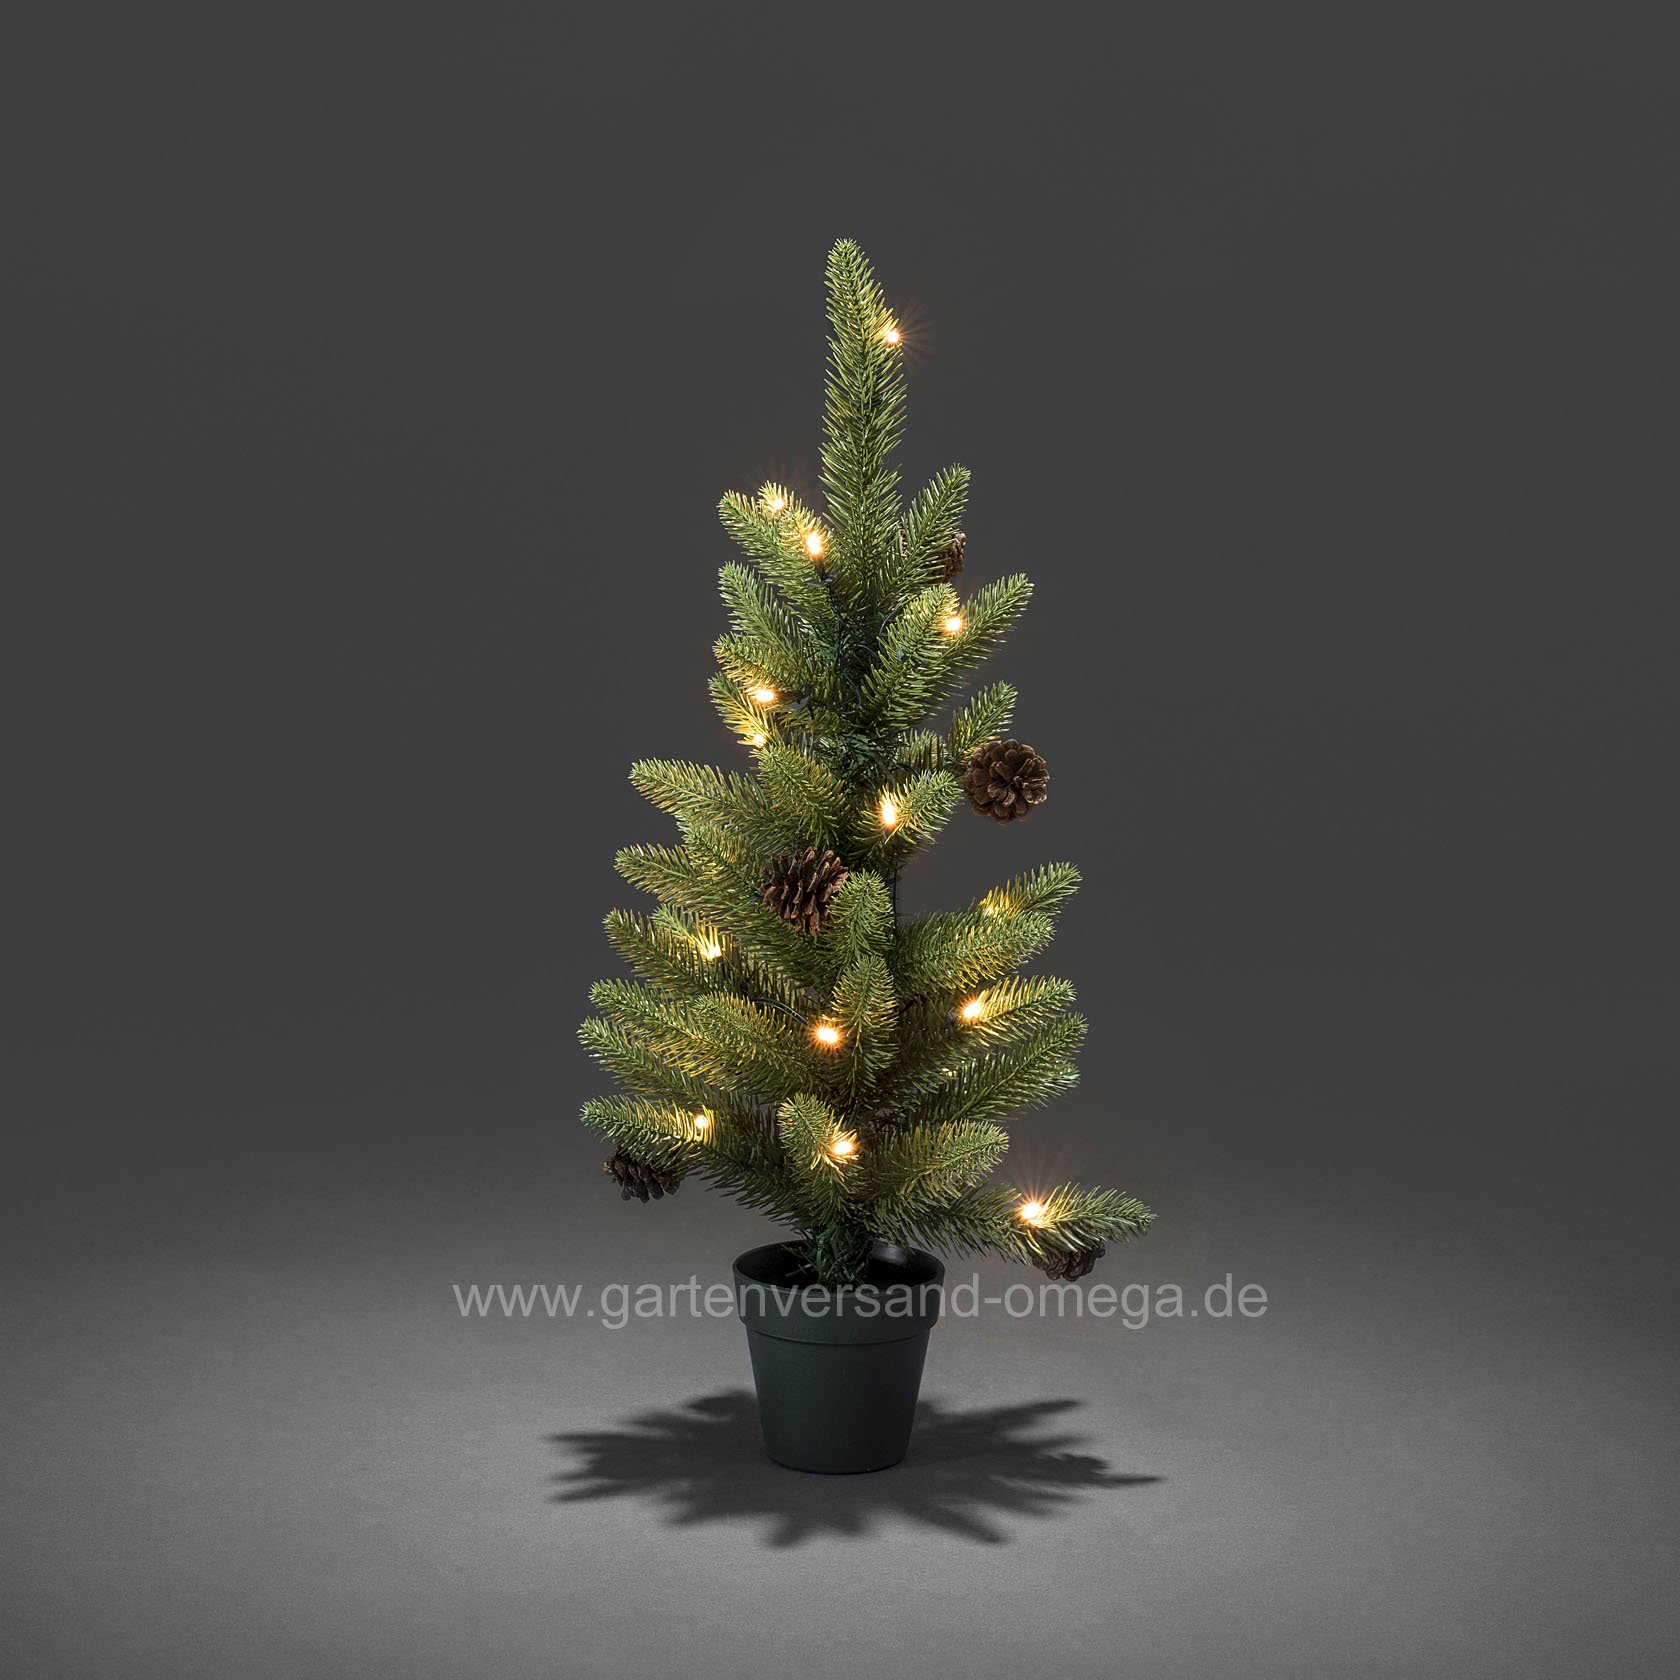 batteriebetriebener led weihnachtsbaum 60cm f r au en mini led weihnachtsbaum kleiner. Black Bedroom Furniture Sets. Home Design Ideas